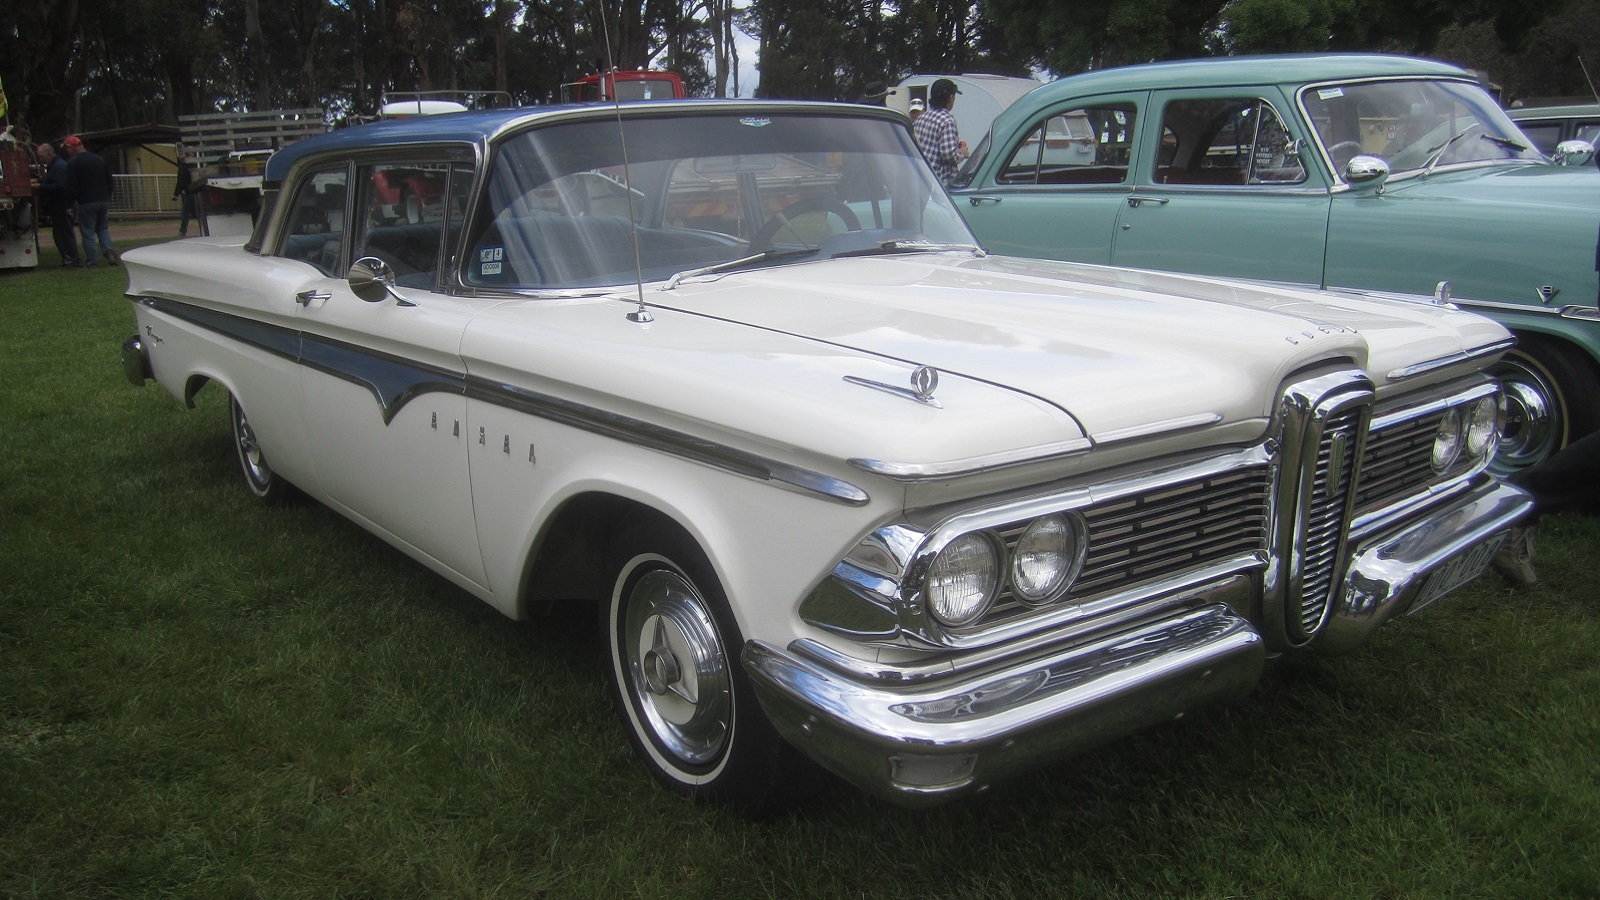 The Ranger name debuted on an Edsel